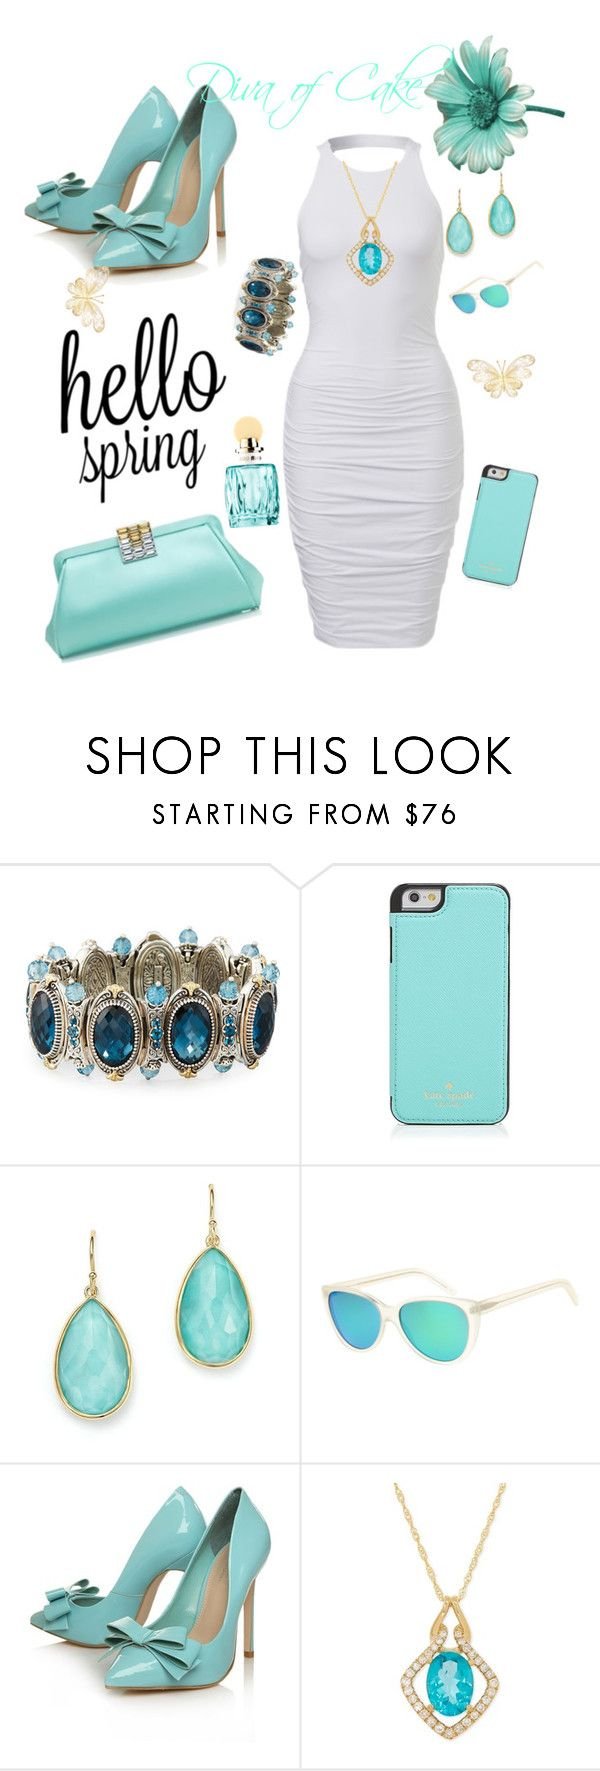 """Summer outfit"" by  Diva of Cake  on Polyvore featuring Konstantino, Kate Spade, Tiffany & Co., Ippolita, L.G.R, Carvela Kurt Geiger and Miu Miu"